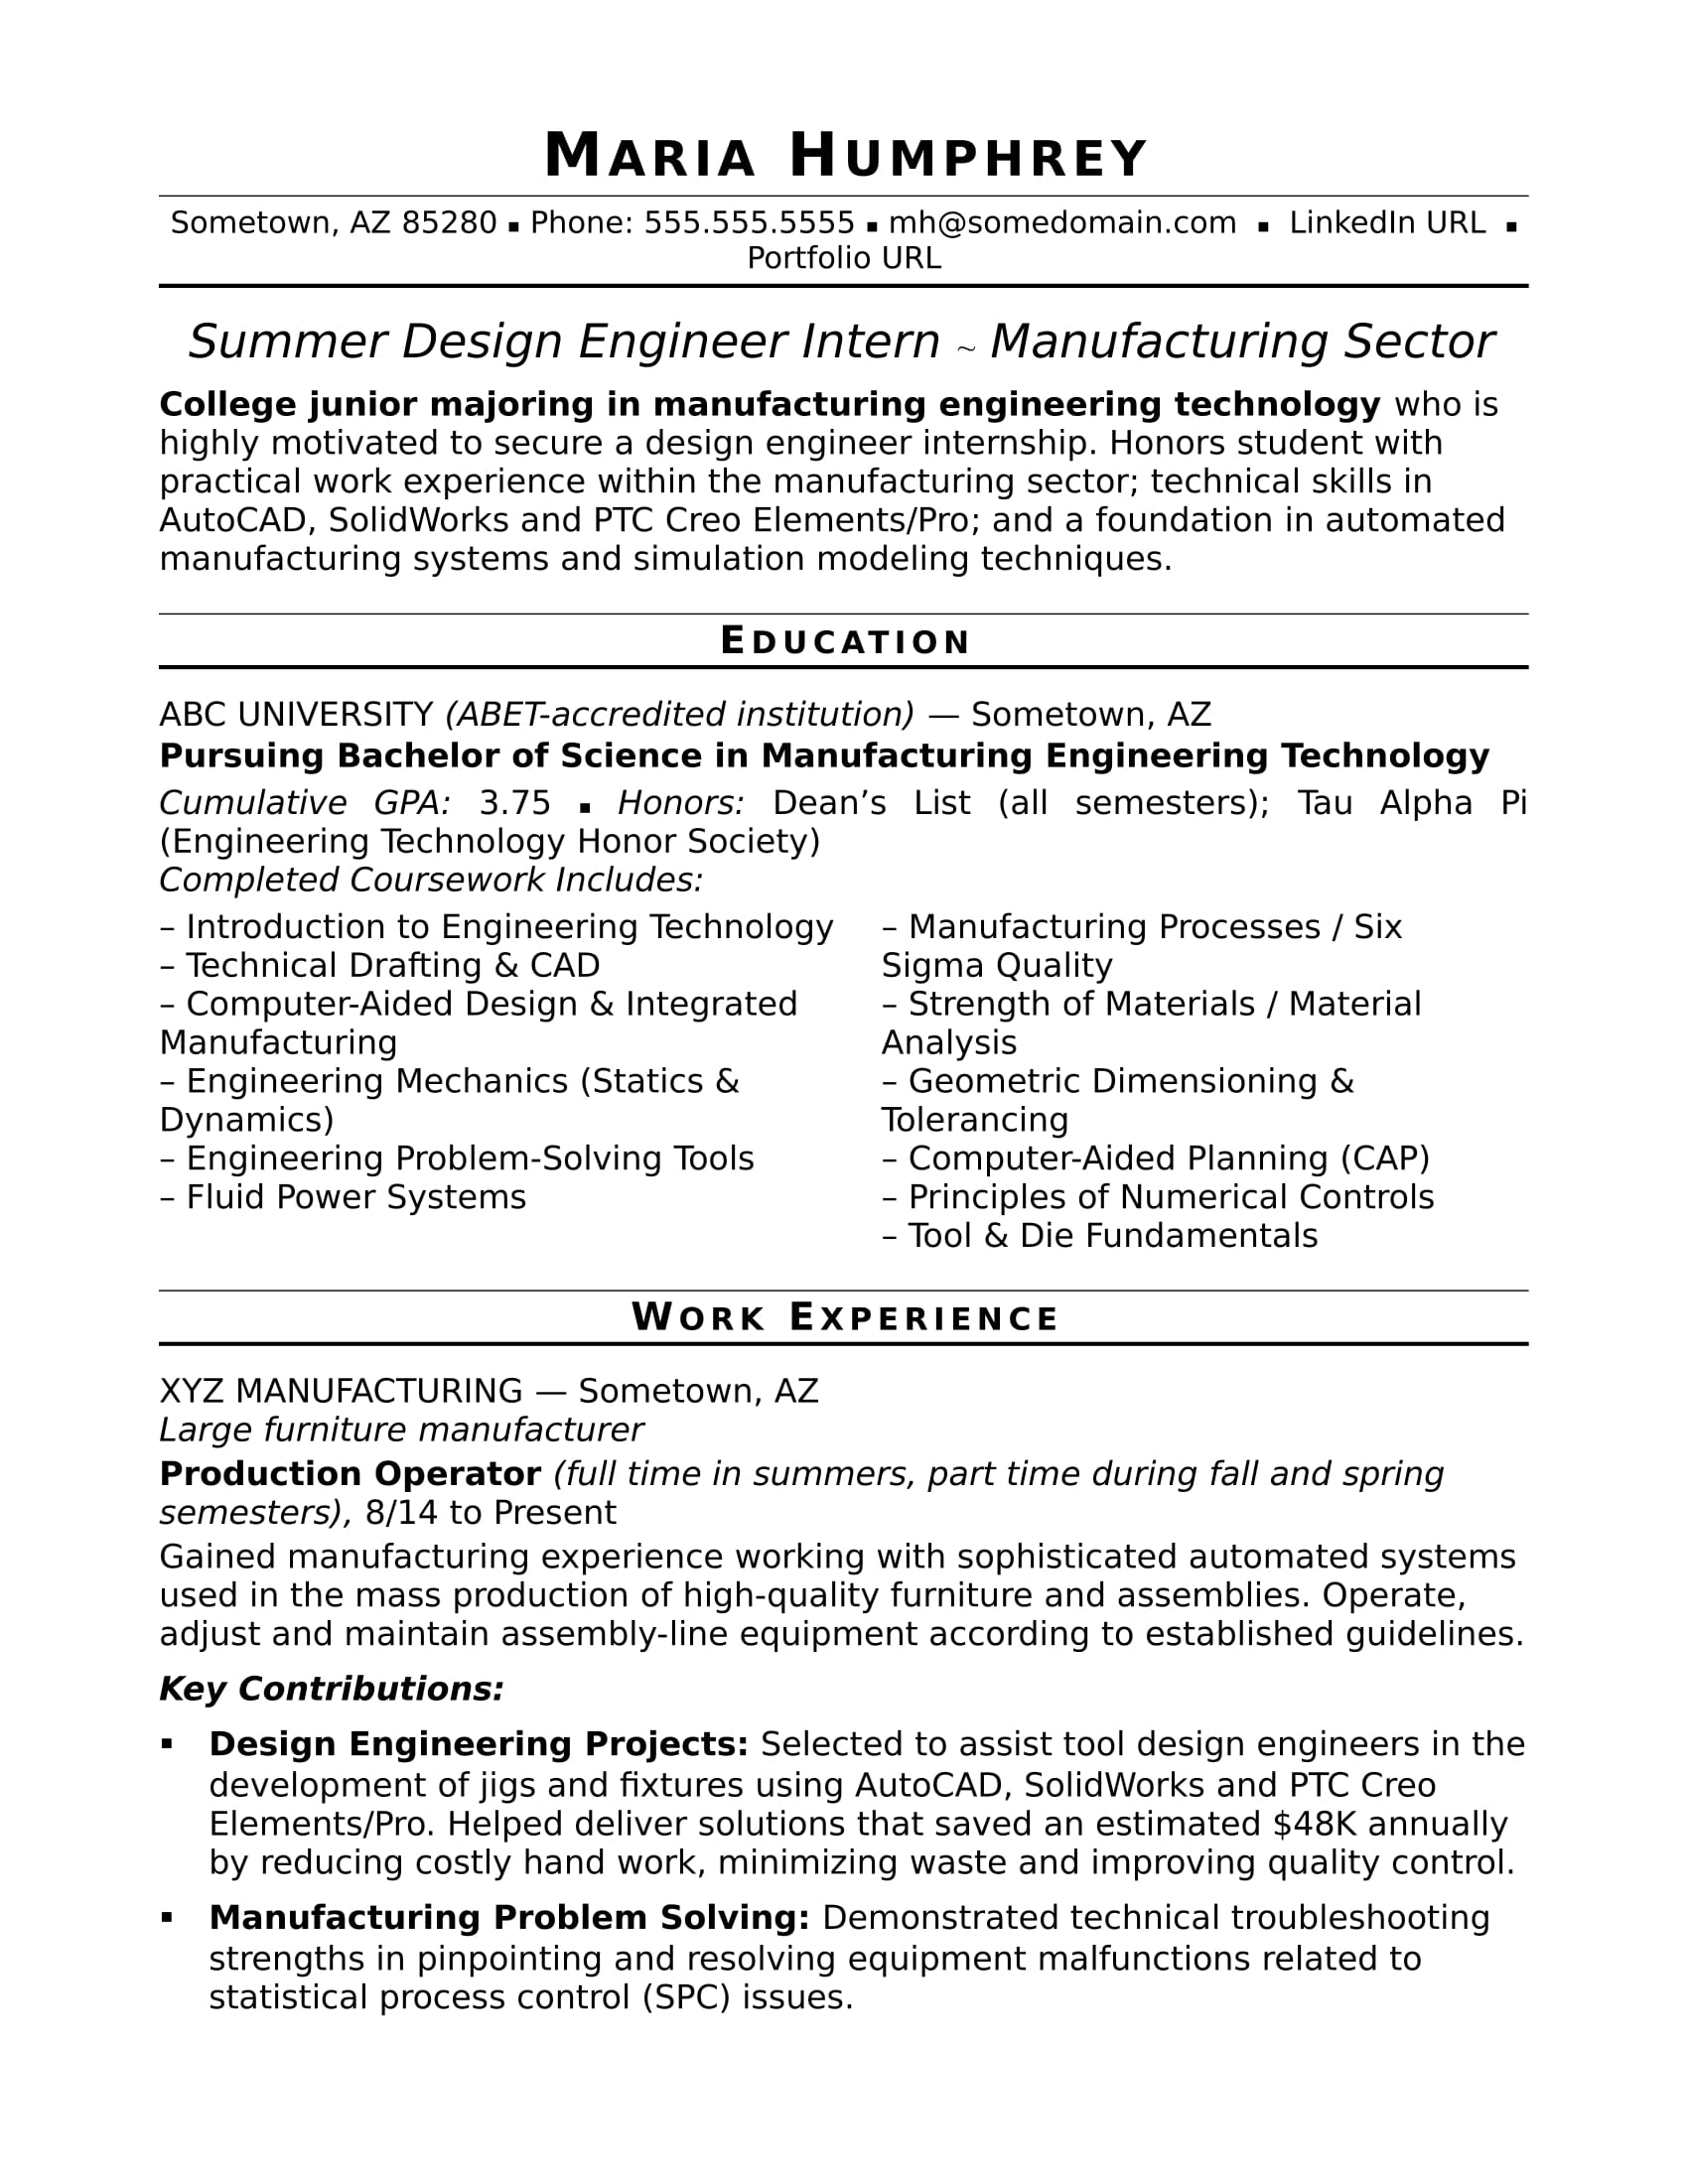 Sample Resume For An EntryLevel Design Engineer  MonsterCom